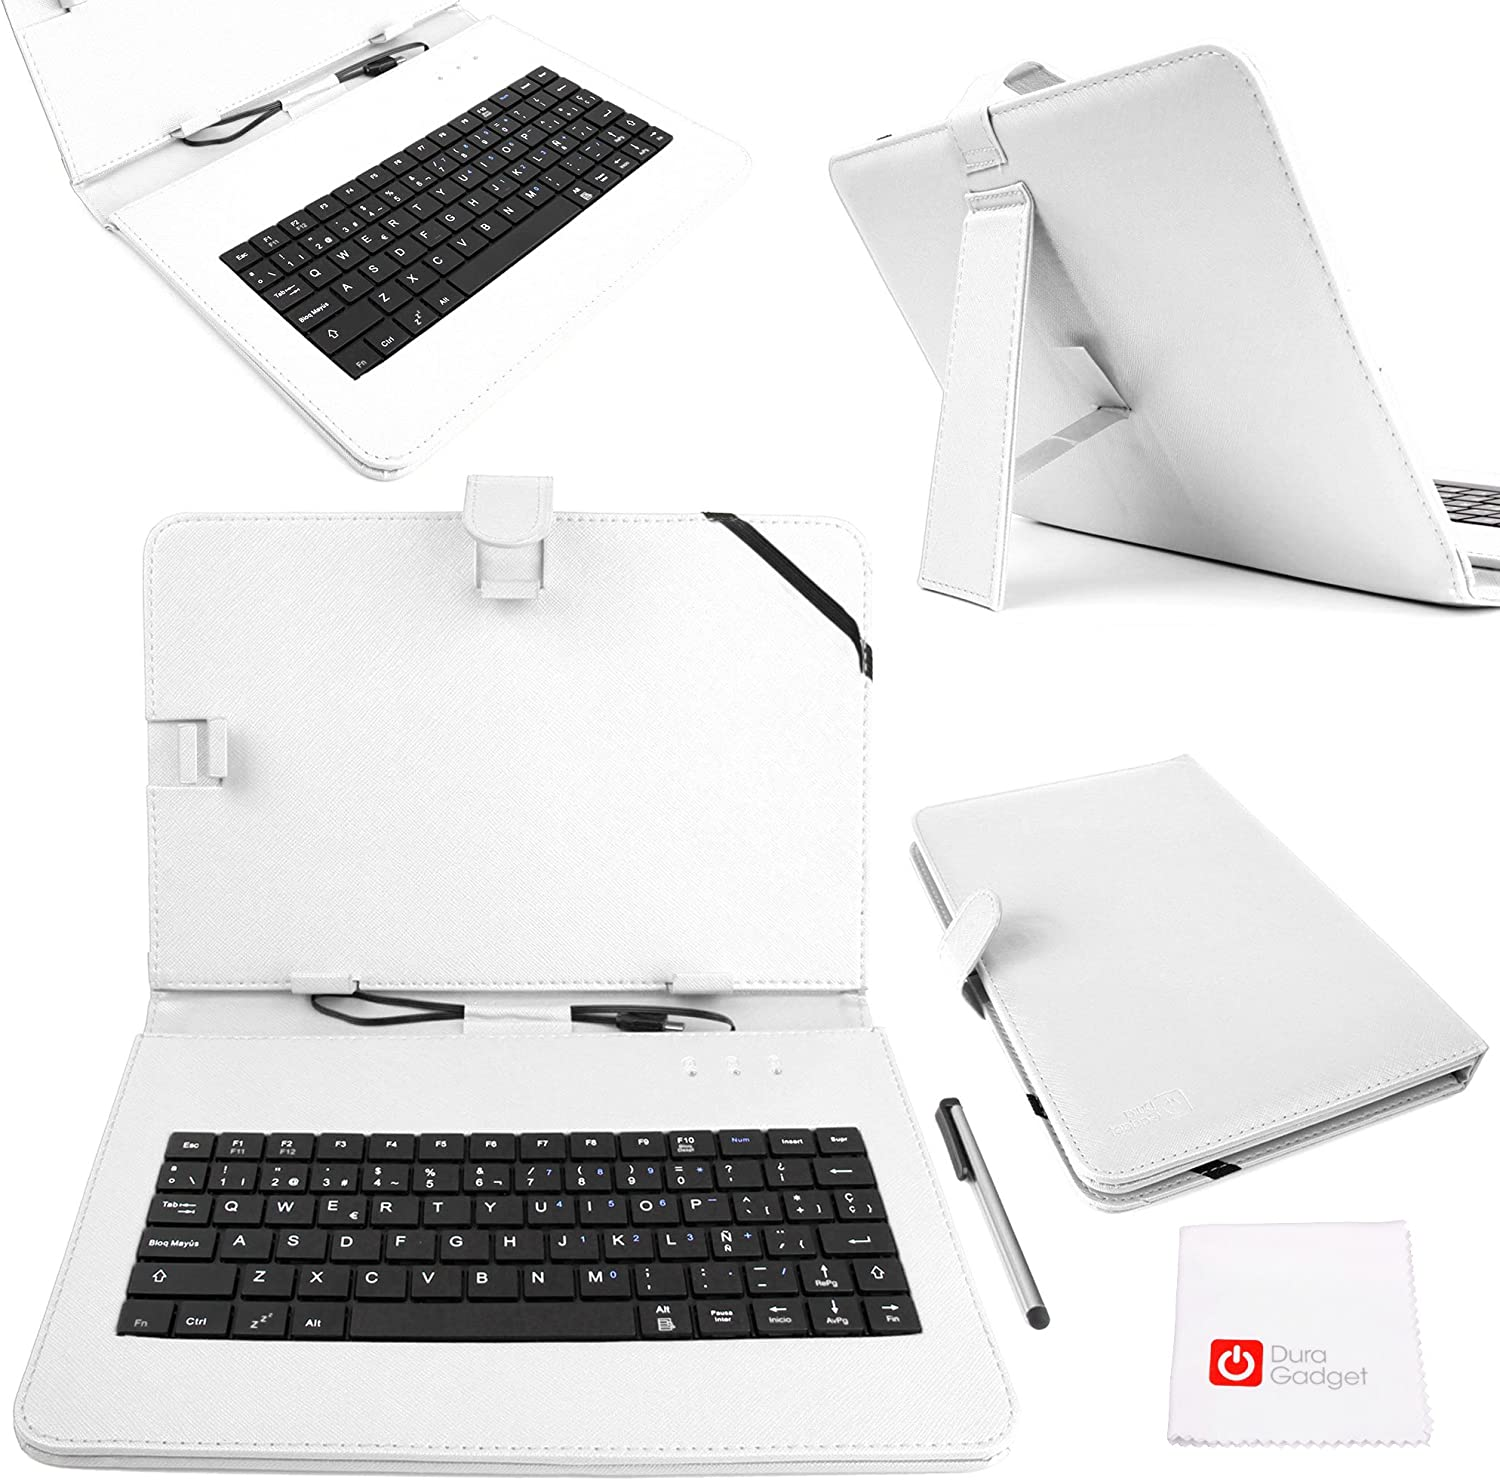 DURAGADGET ACER Iconia Tab 10 Premium Spanish (ES) QWERTY Keyboard Case for with Micro USB Connection in White Faux Leather - Compatible with The ACER Iconia Tab 10 A3-A20